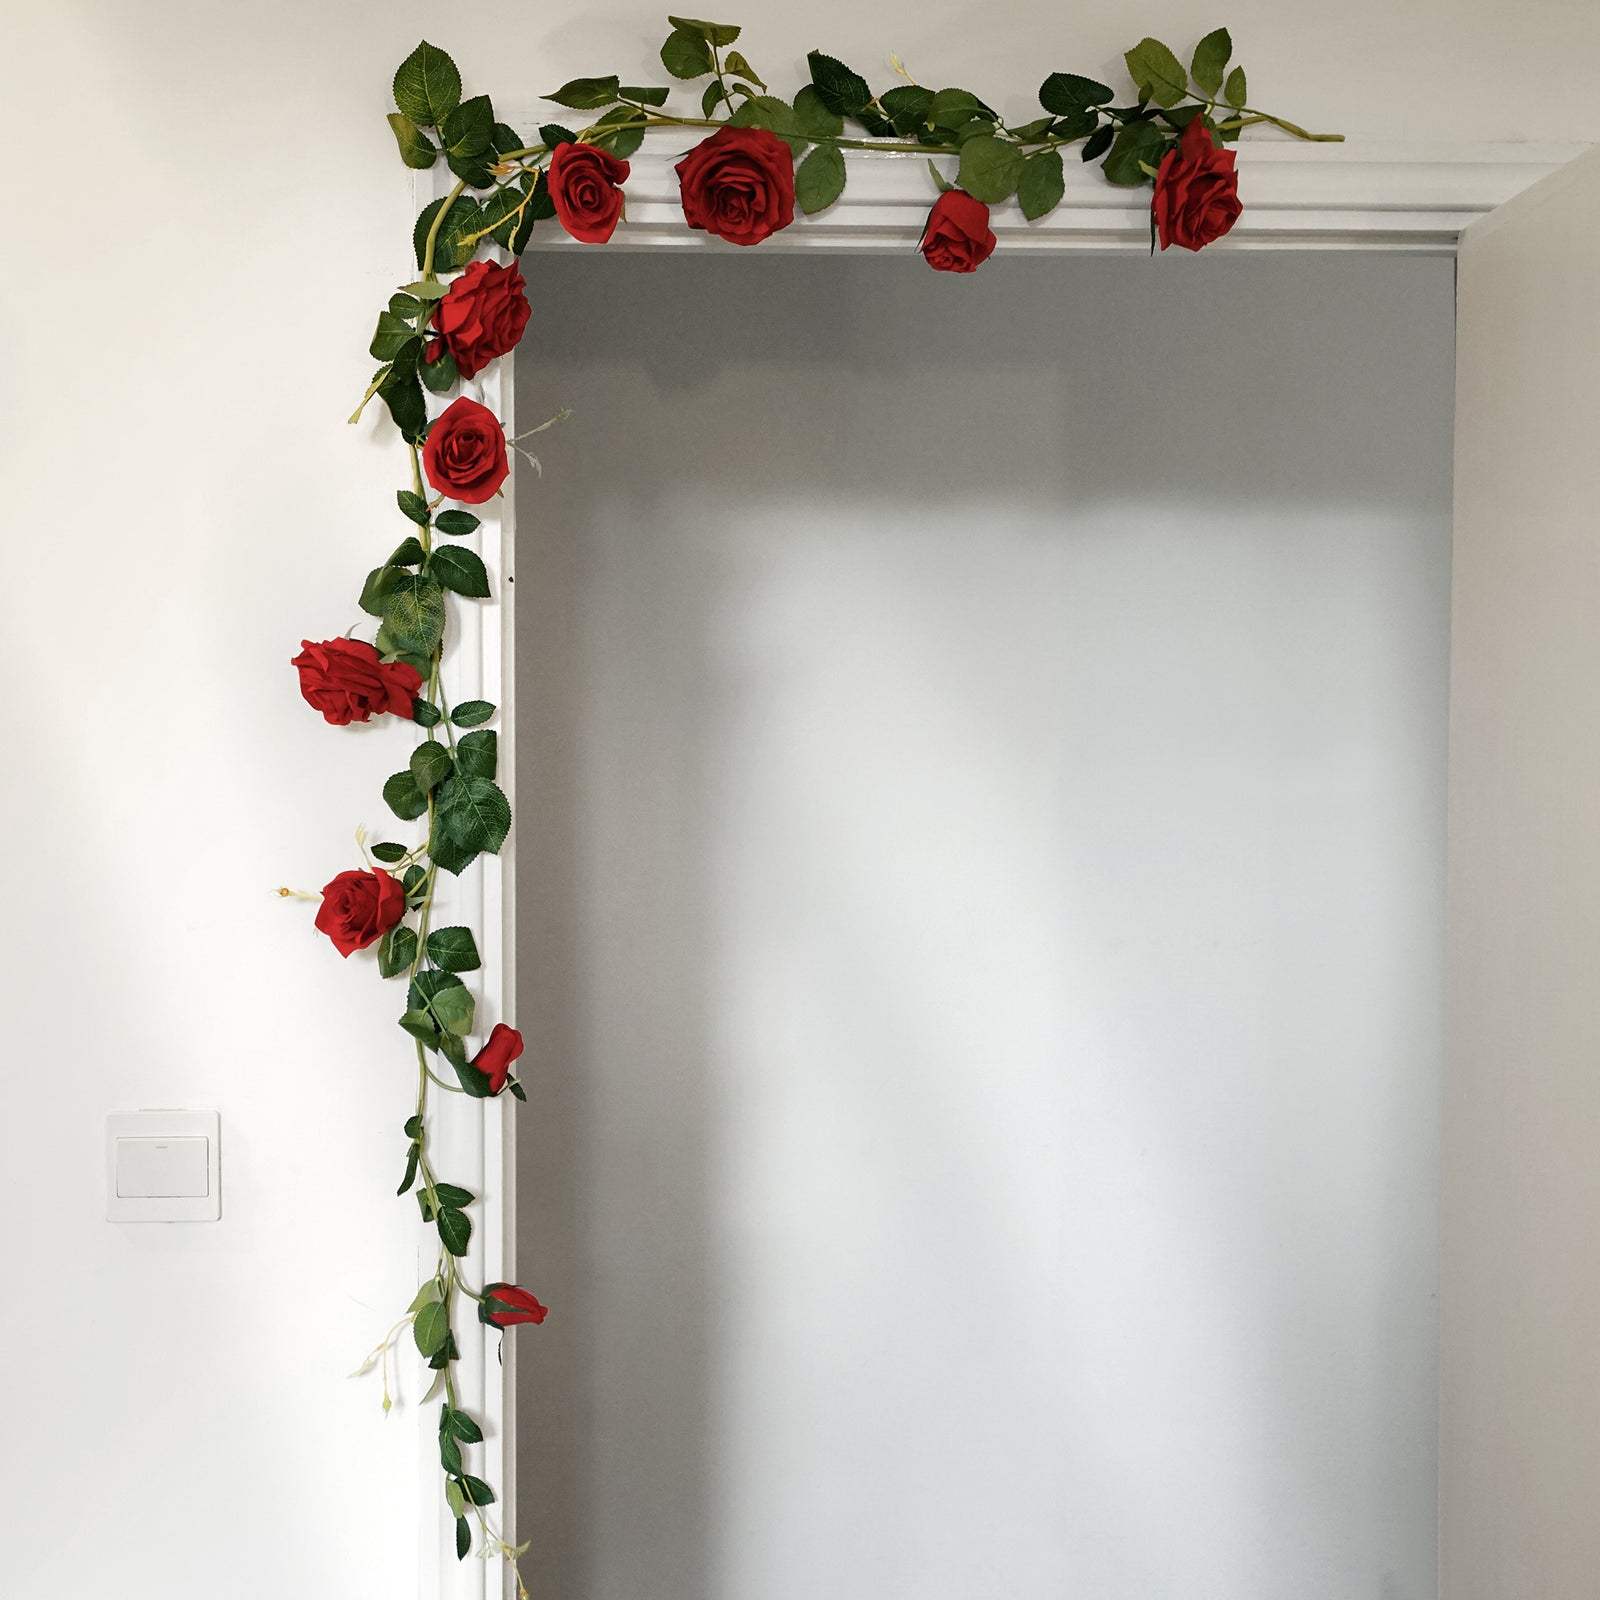 FiveSeasonStuff 2 Pcs Bendable Flower Garland Artificial Silk Rose Vine Leaves Hanging Face Flowers for Wall Decoration, Wreaths (Red)